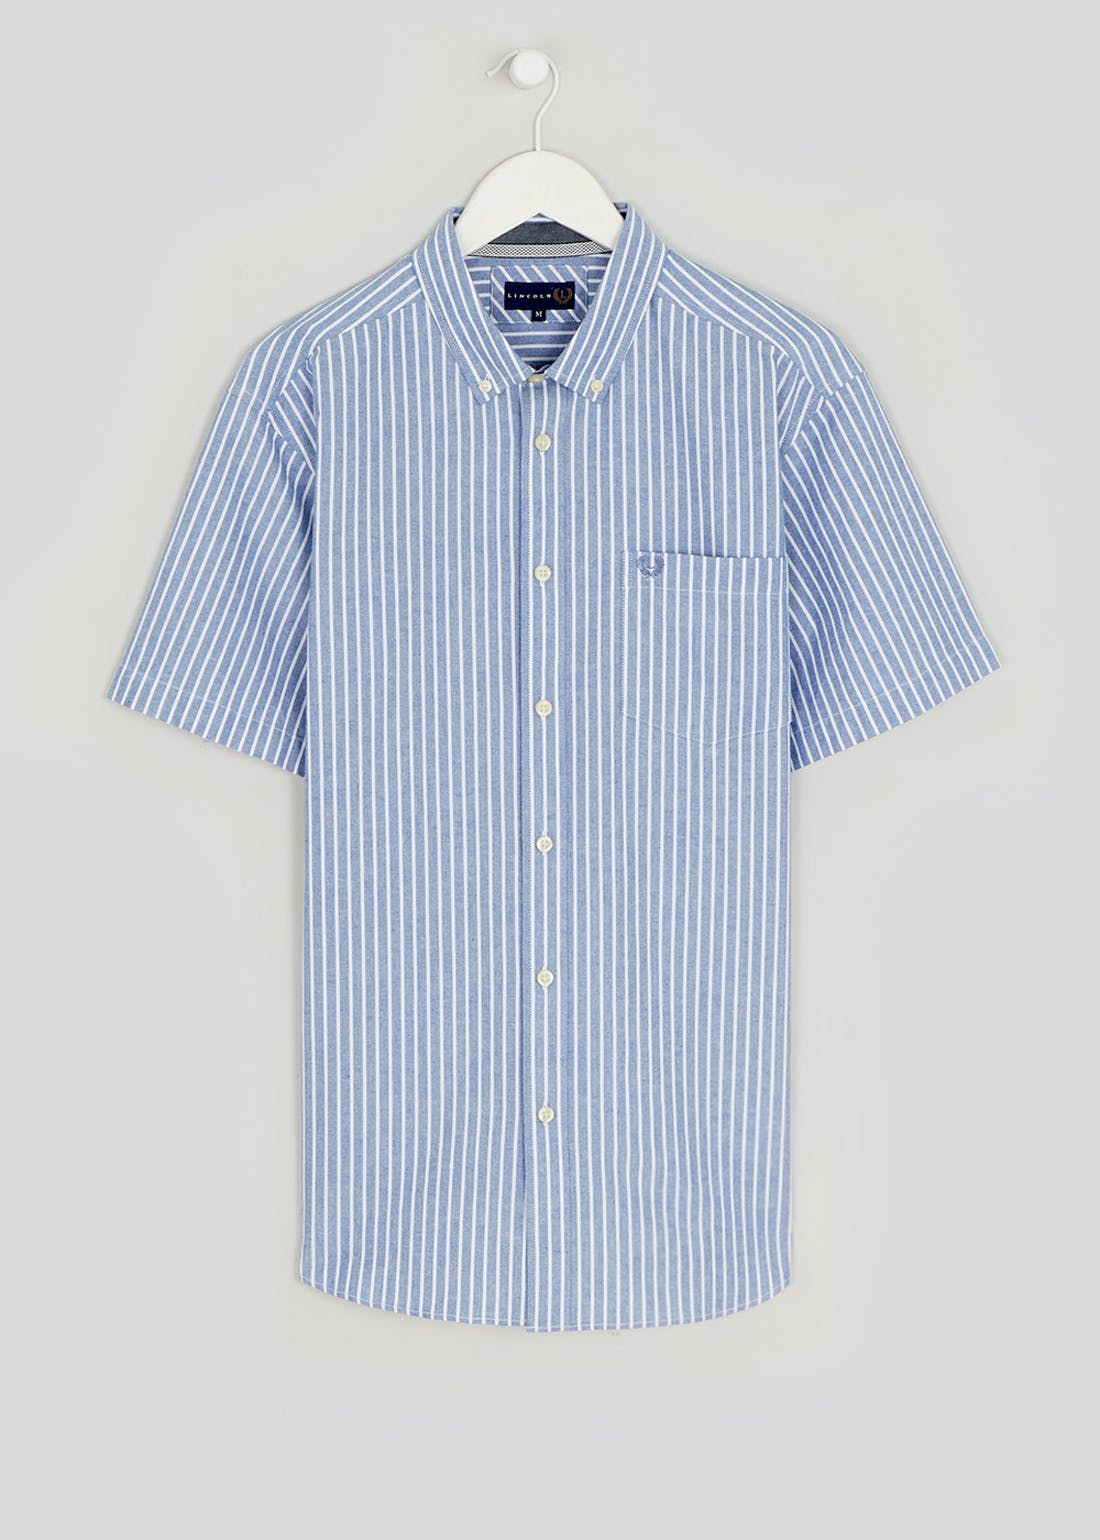 Lincoln Short Sleeve Stripe Oxford Shirt